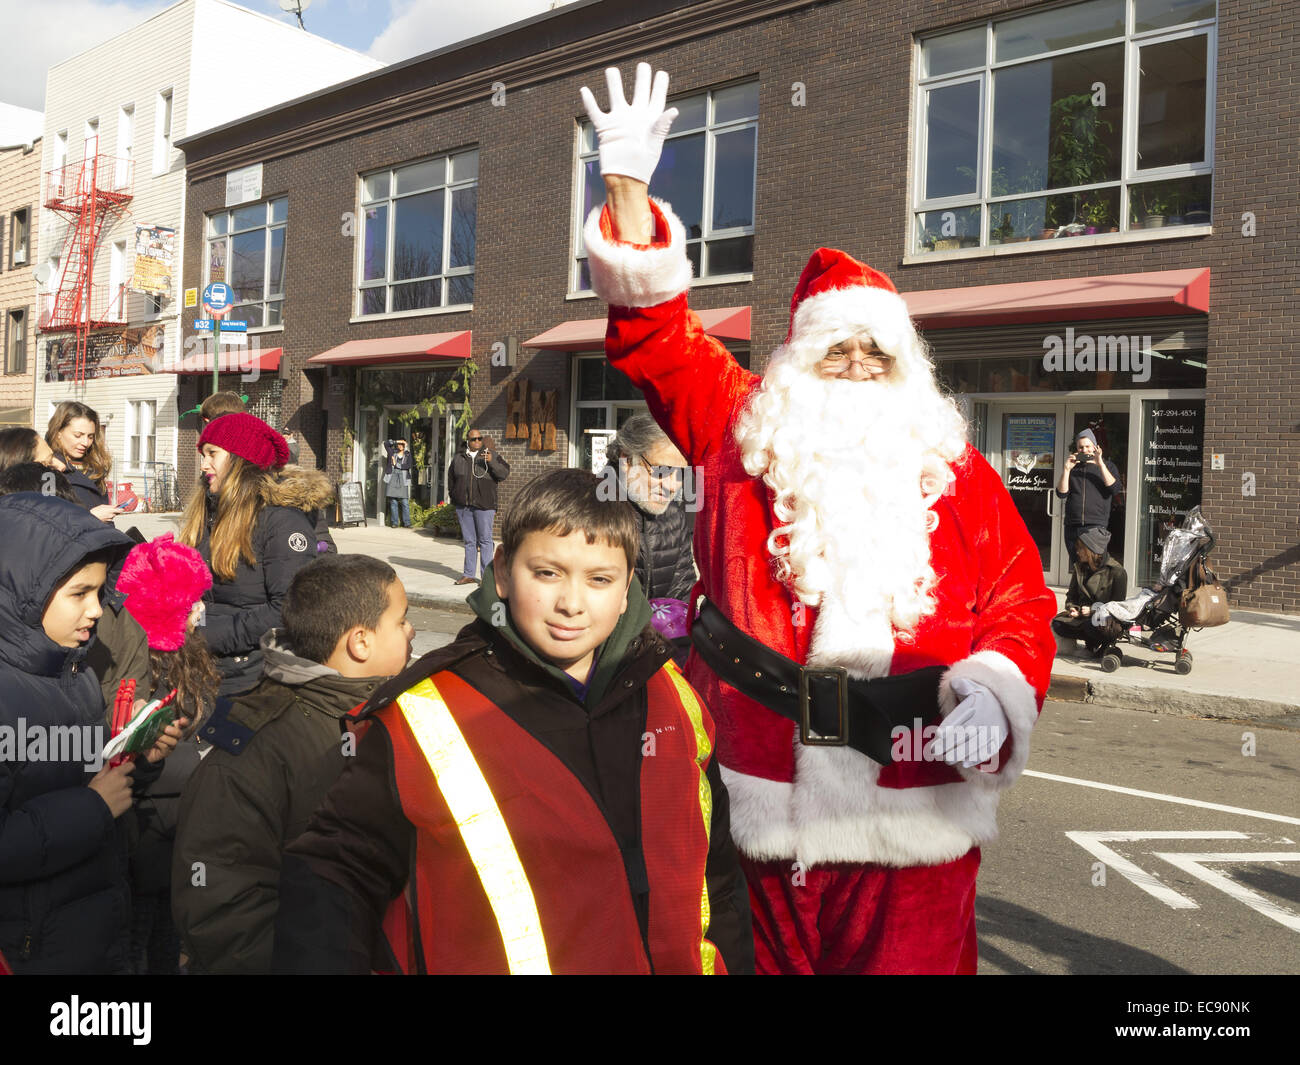 Santa Jingle Bell Parade in the Greenpoint section of Brooklyn, NY, 2013. - Stock Image